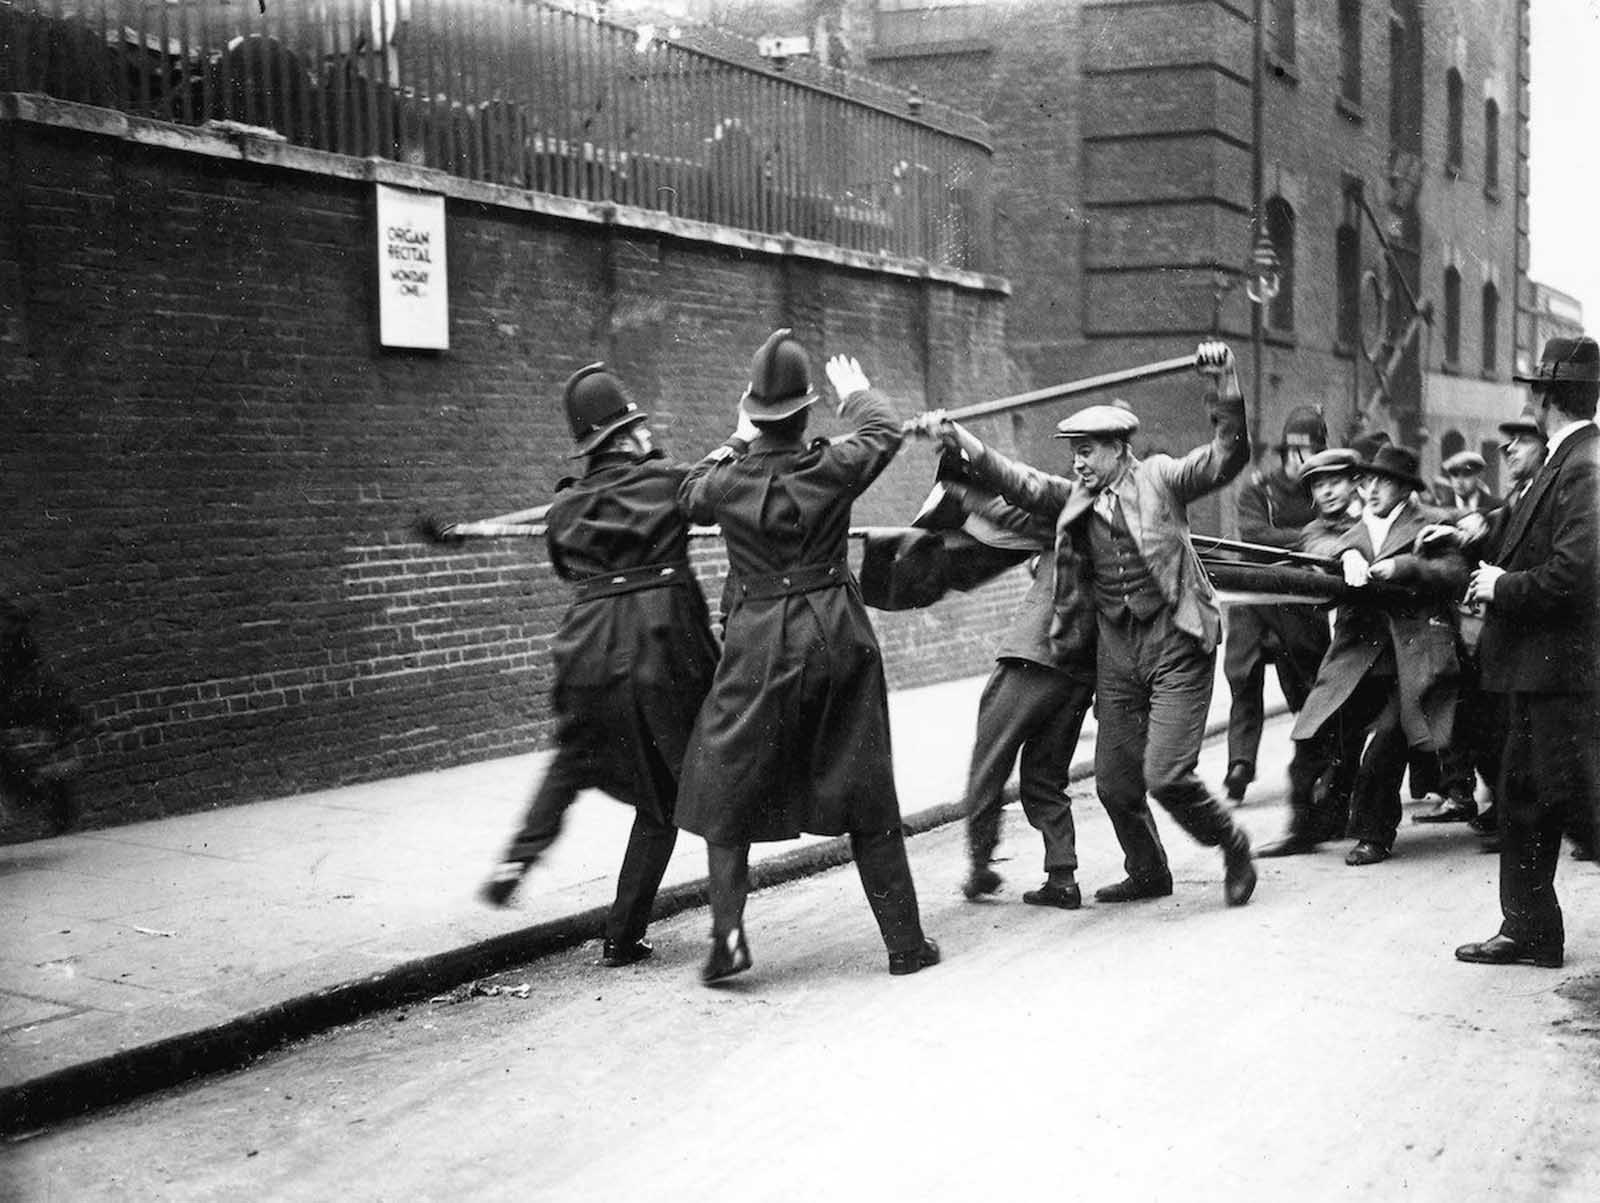 Tower Hill, London - Communists armed with batons, fight police during a demonstration against unemployment. 1930.